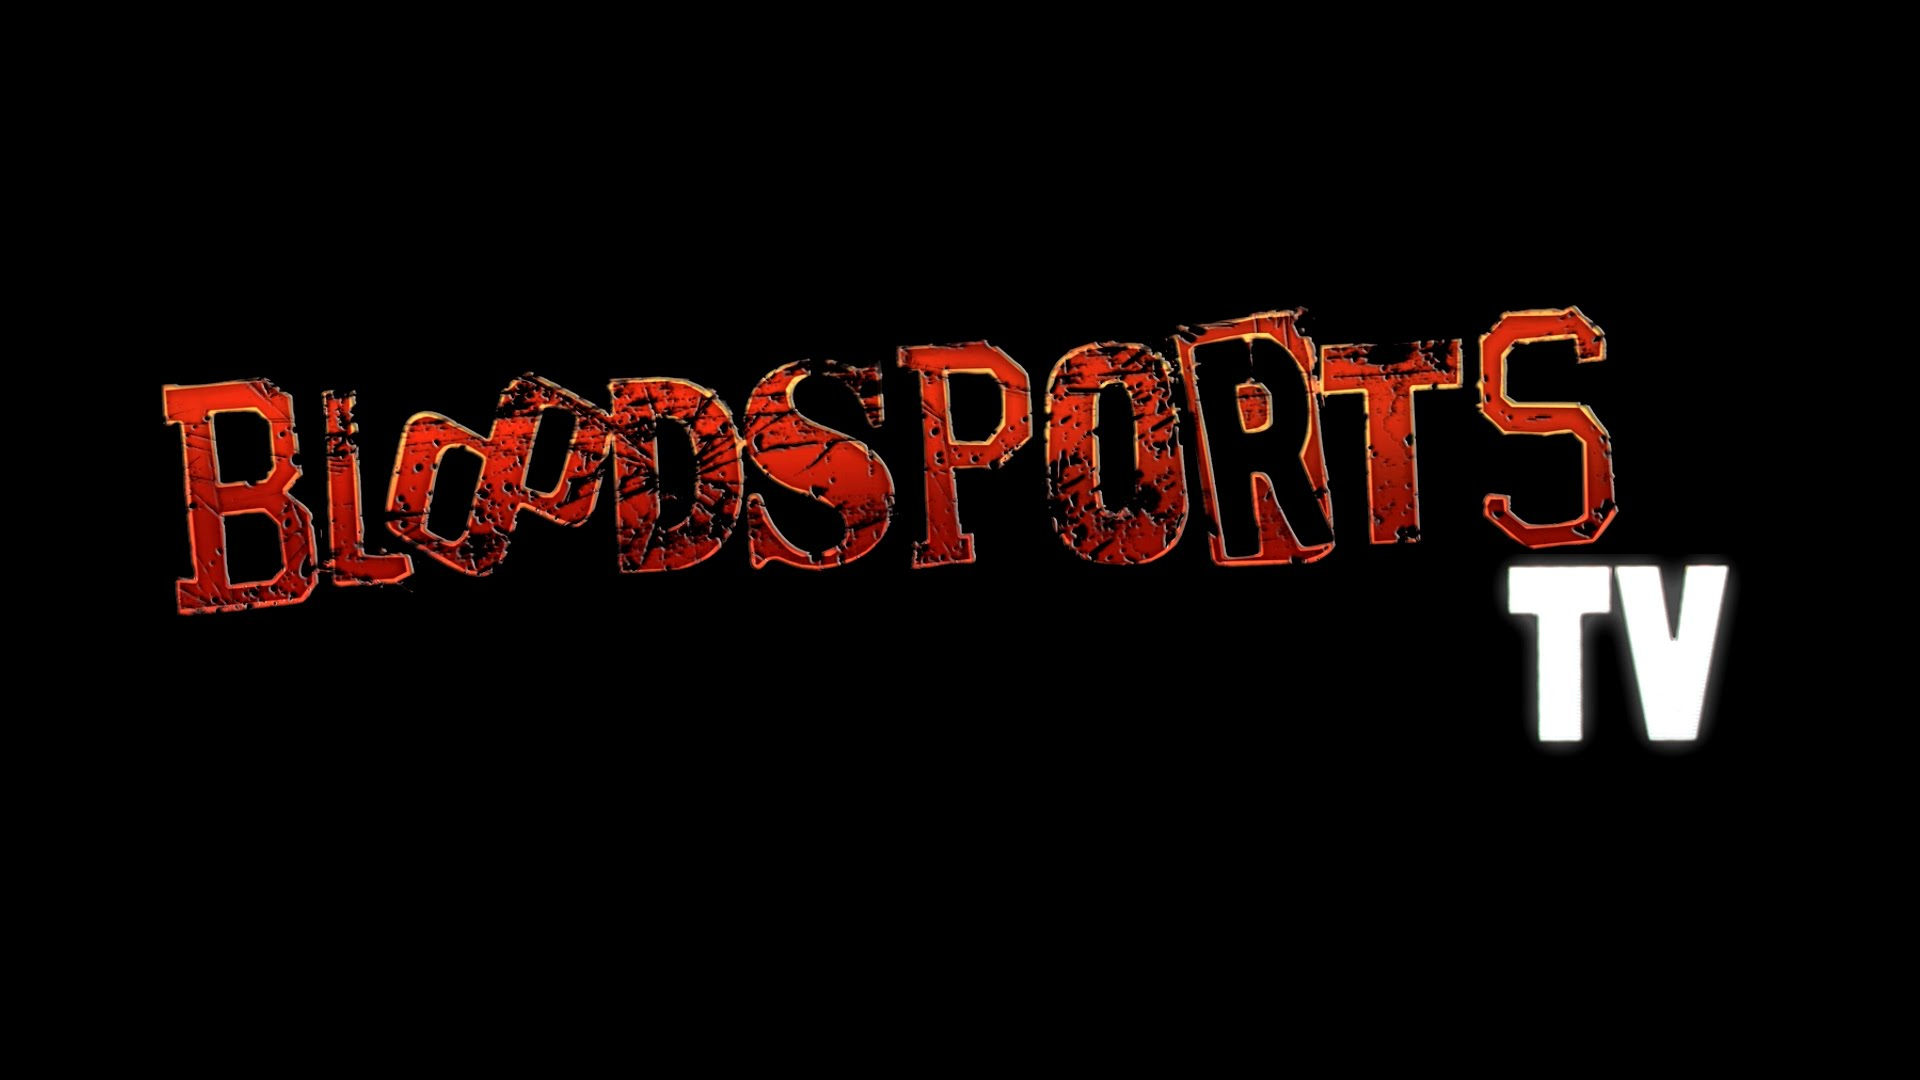 Bloodsports.TV (STEAM KEY/ Region free)